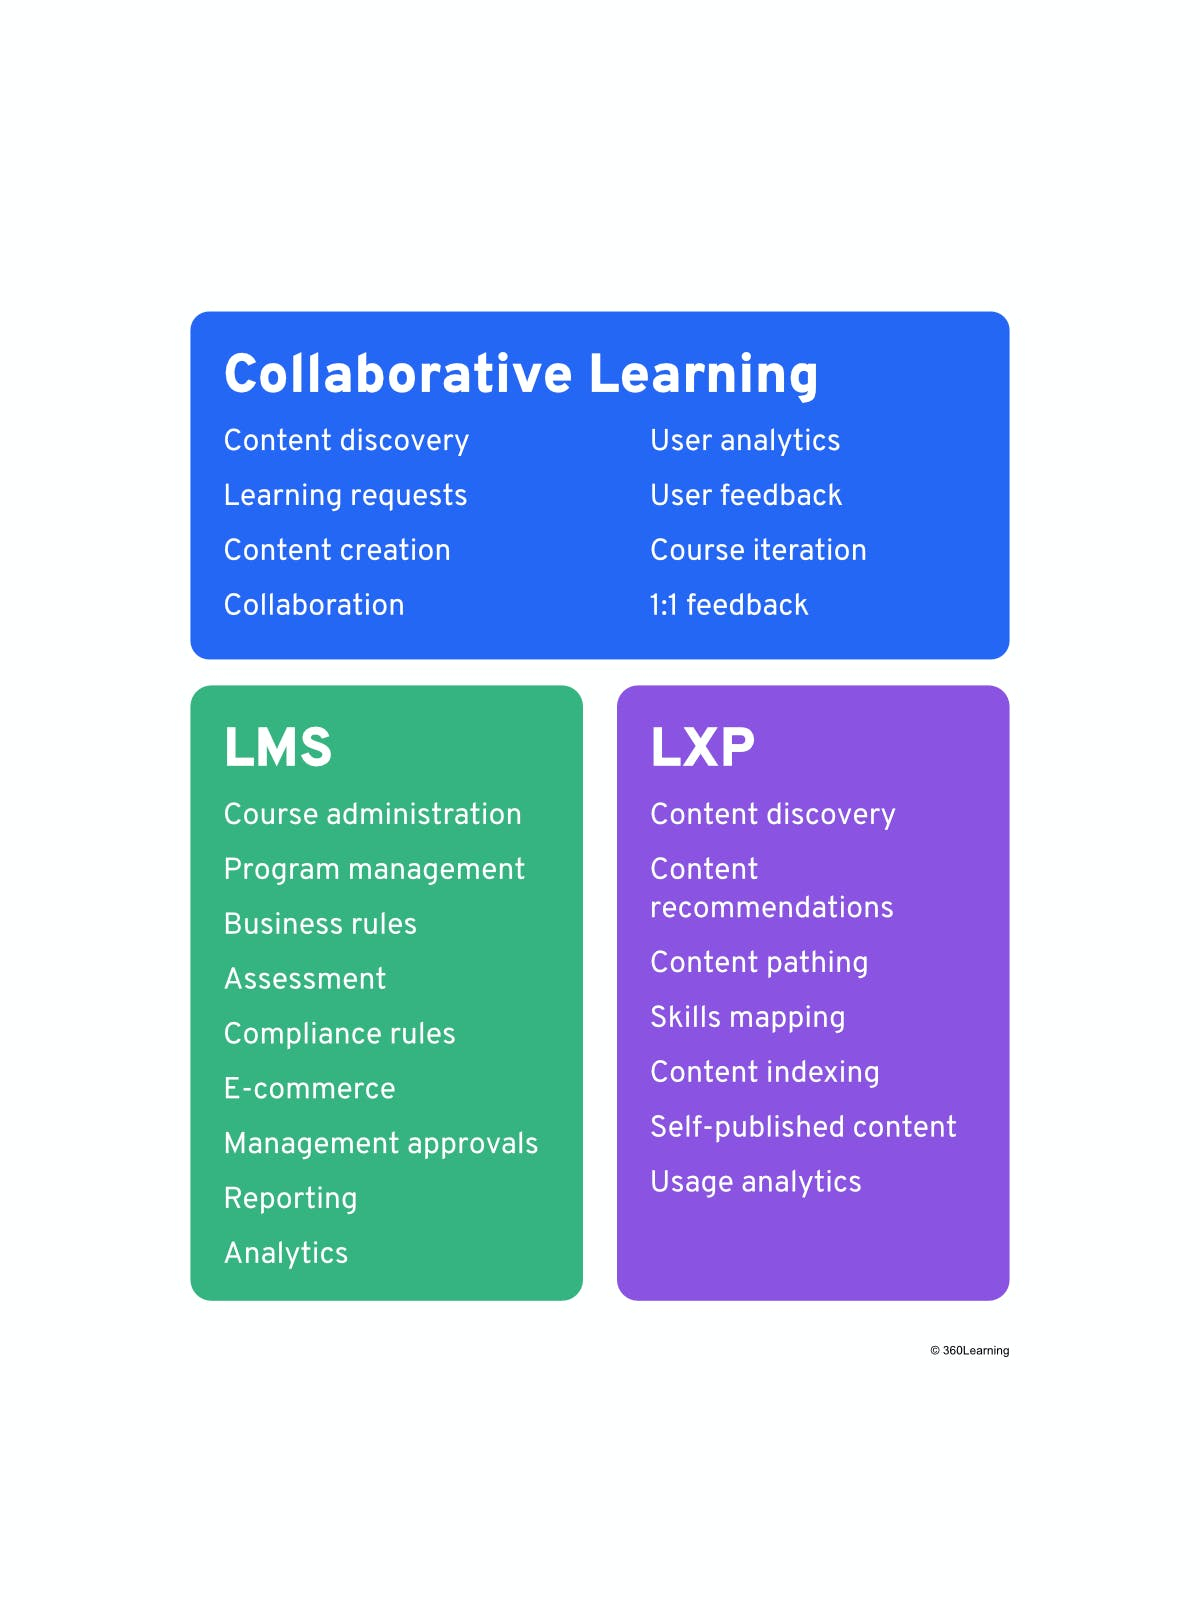 Collaborative learning as the next phase of LMS